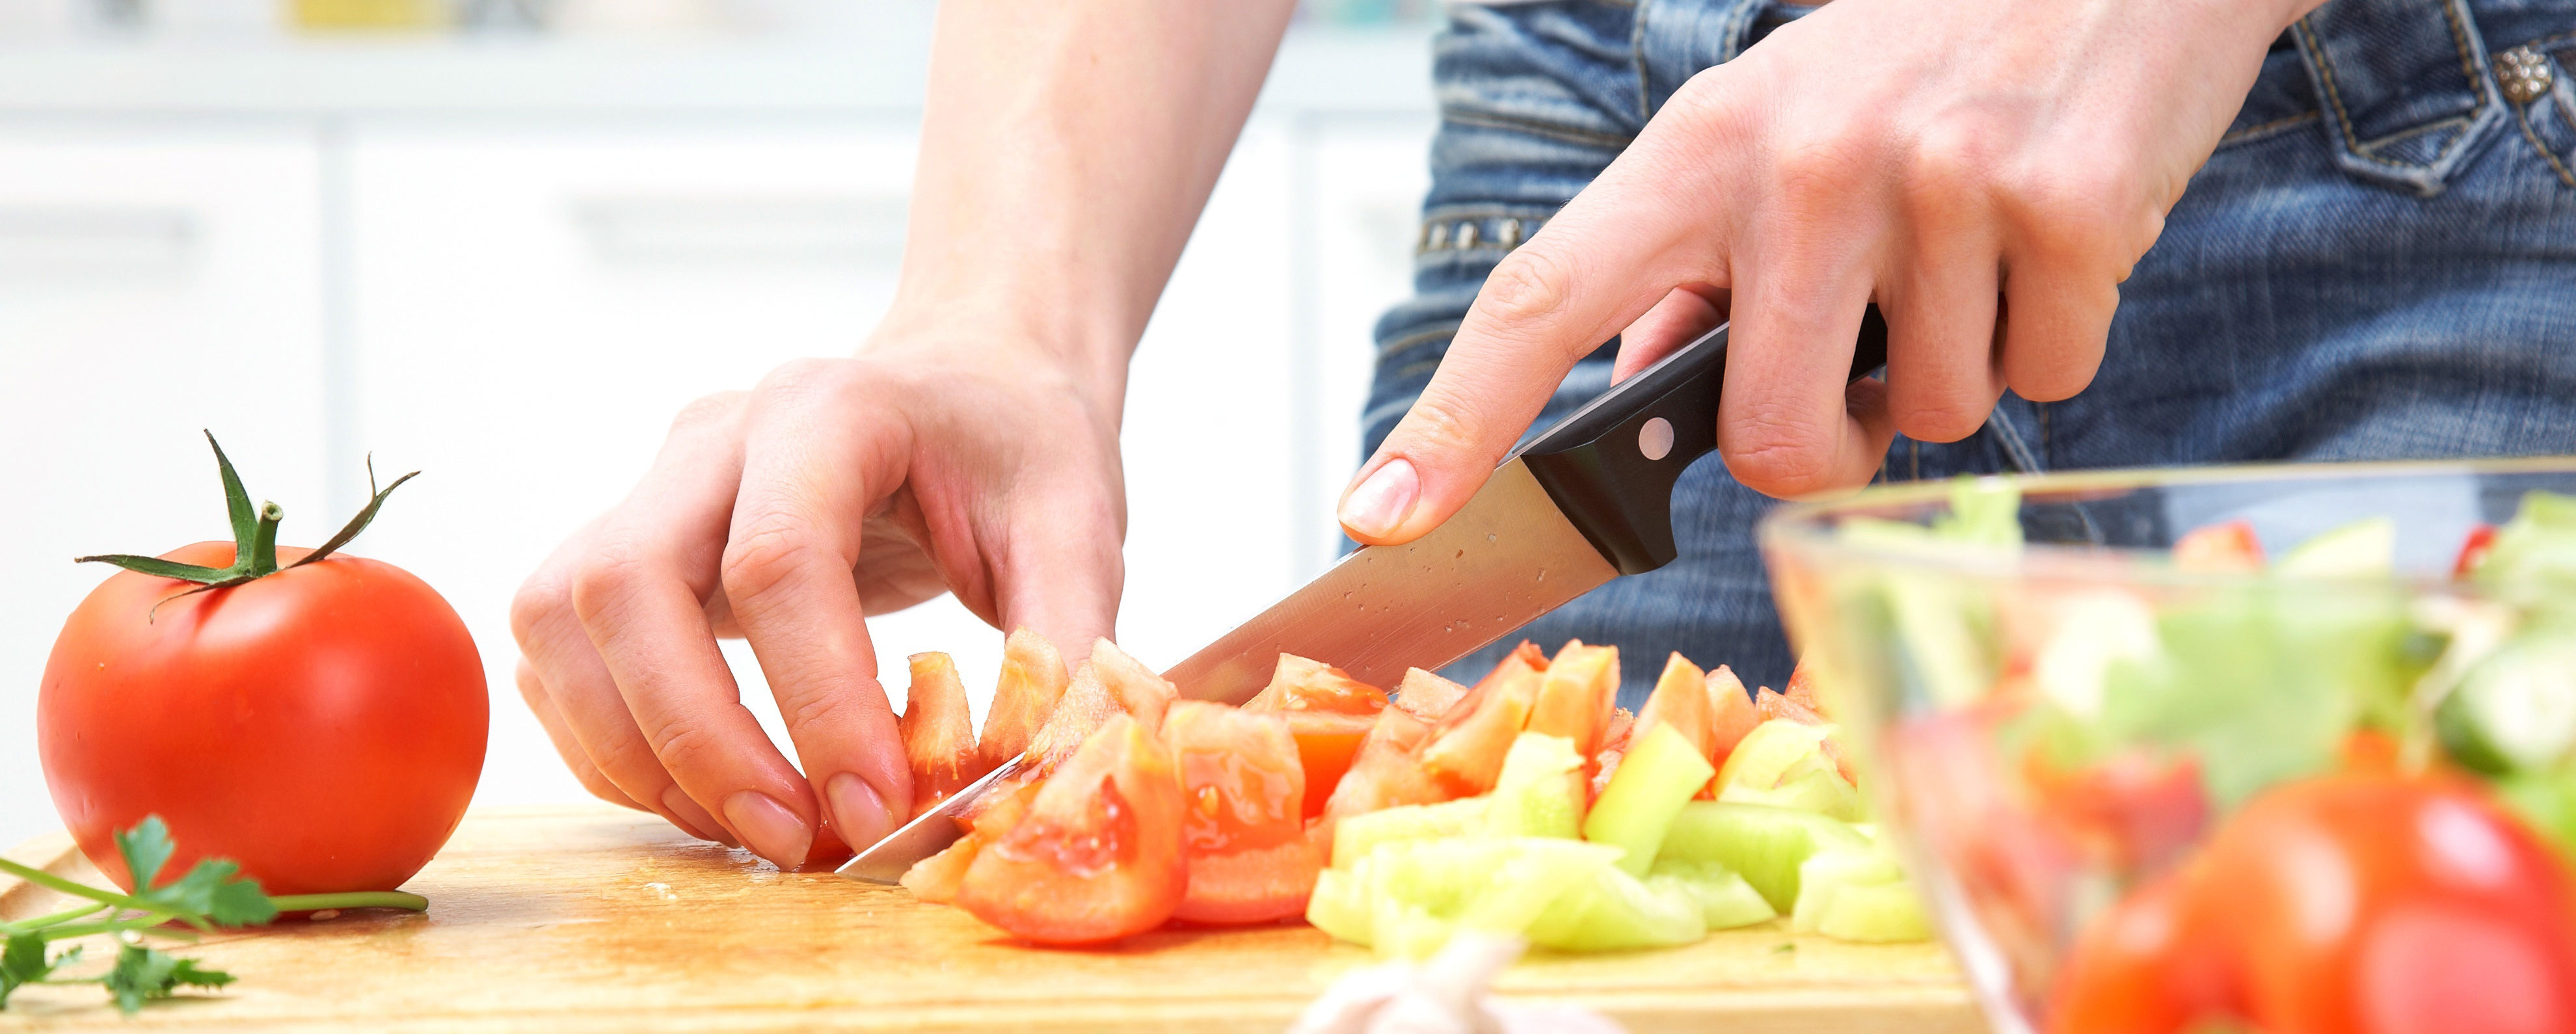 expert cooking advice you can use with kitchen knives set skenda one of the best things that you can do to save money and improve the quality of your dressings is to make your own homemade dressings will save you a lot